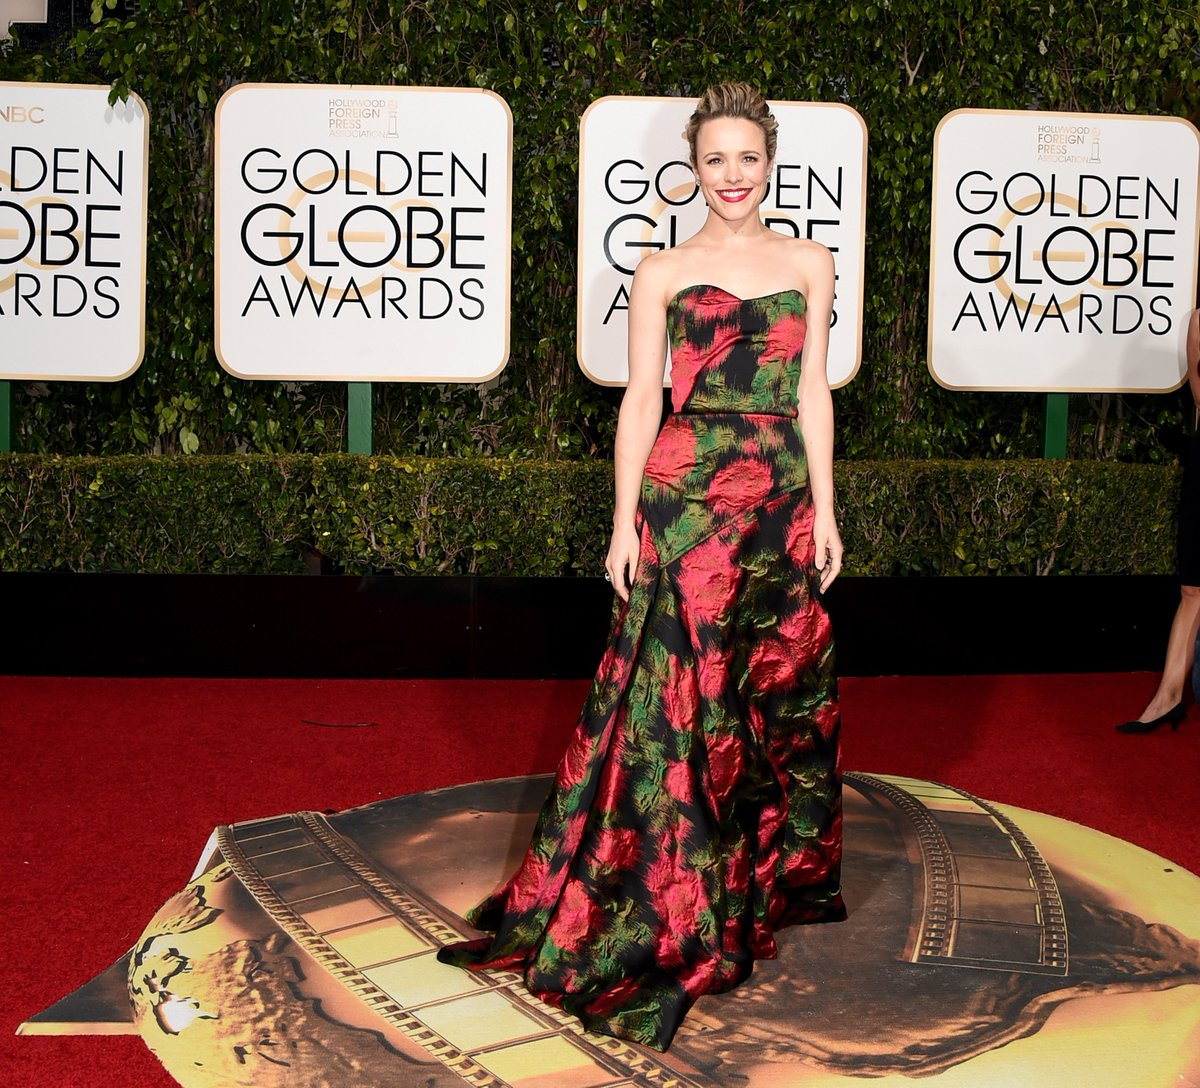 Pretty in print! #RachelMcadams takes the #GoldenGlobes red carpet